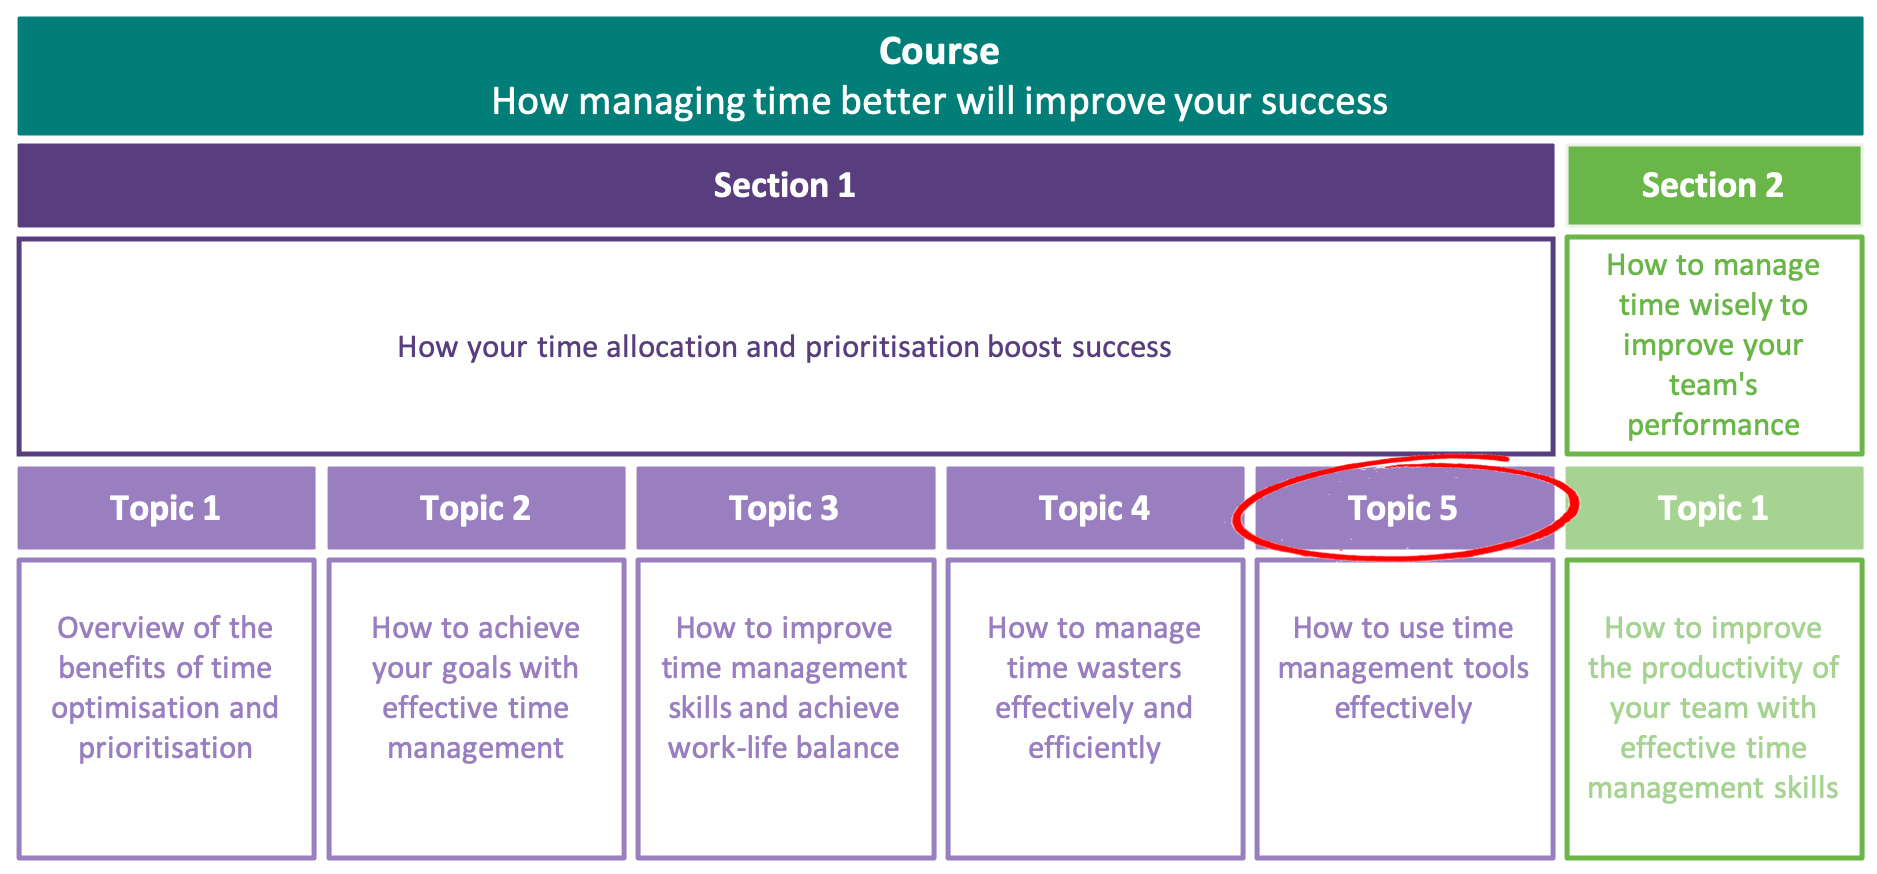 How to use time management tools effectively